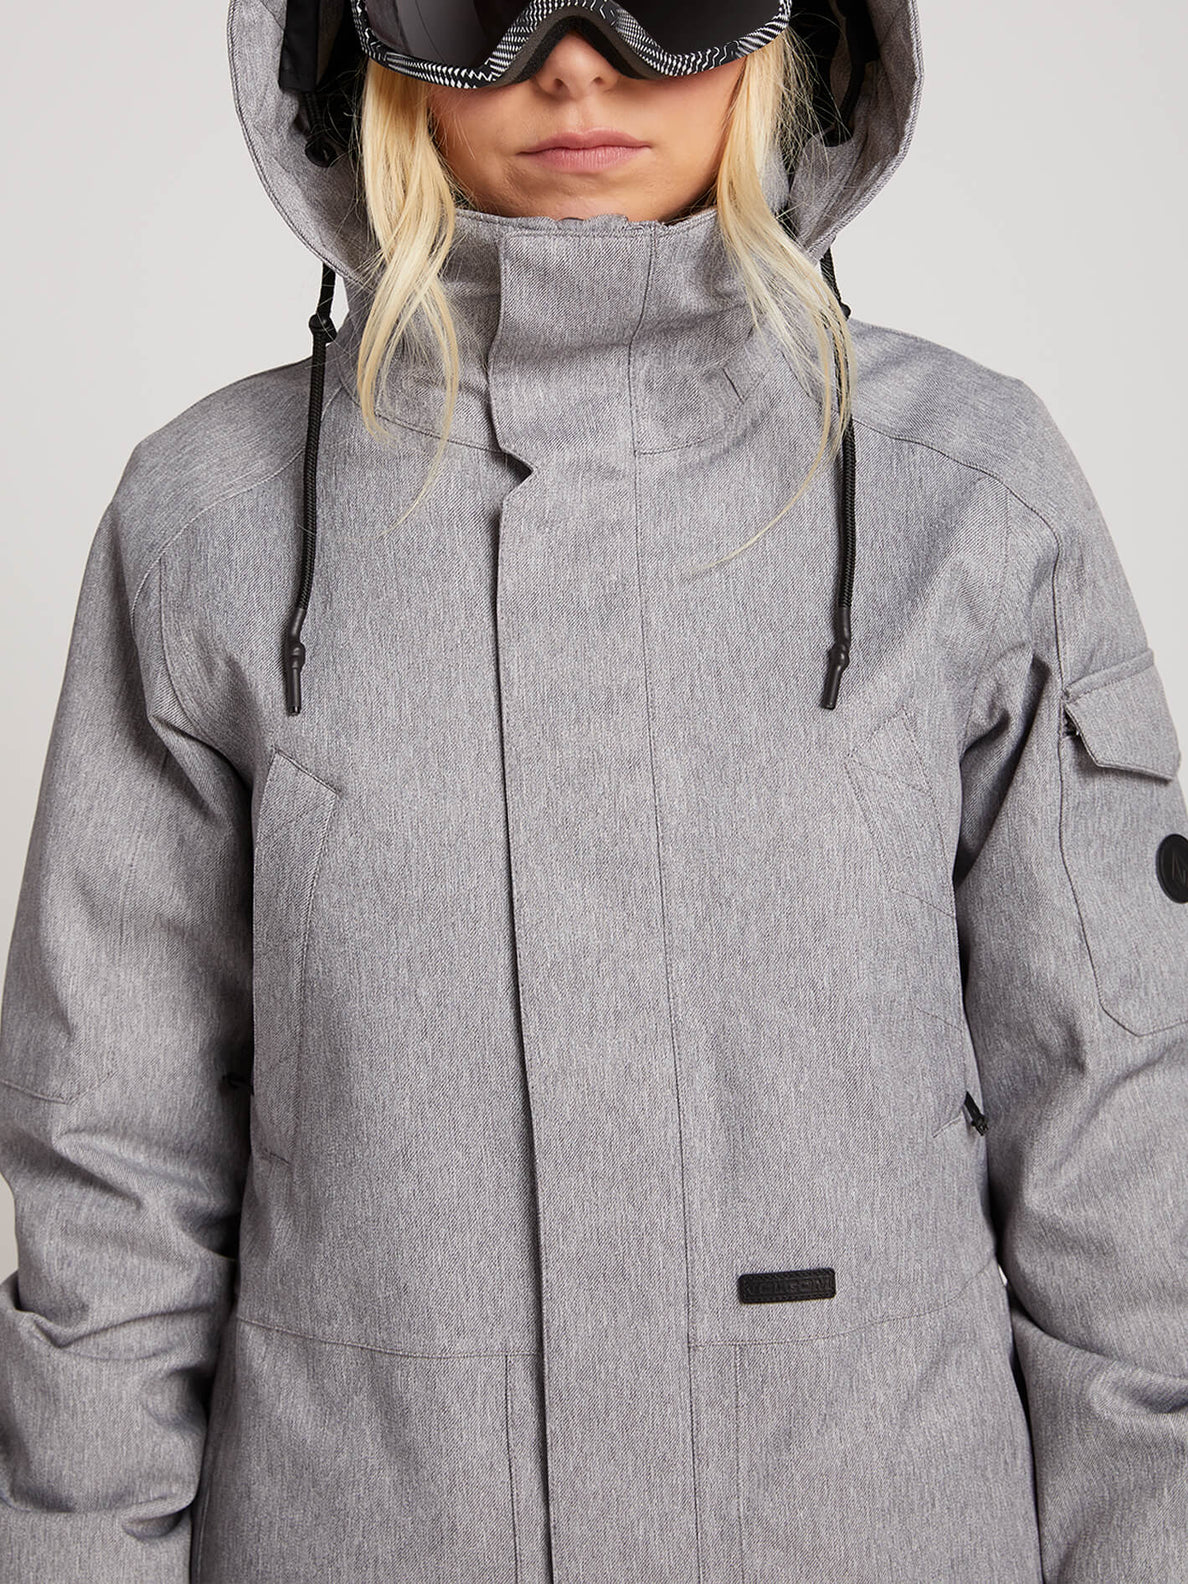 Shrine Insulated Jacket In Heather Grey, Alternate View